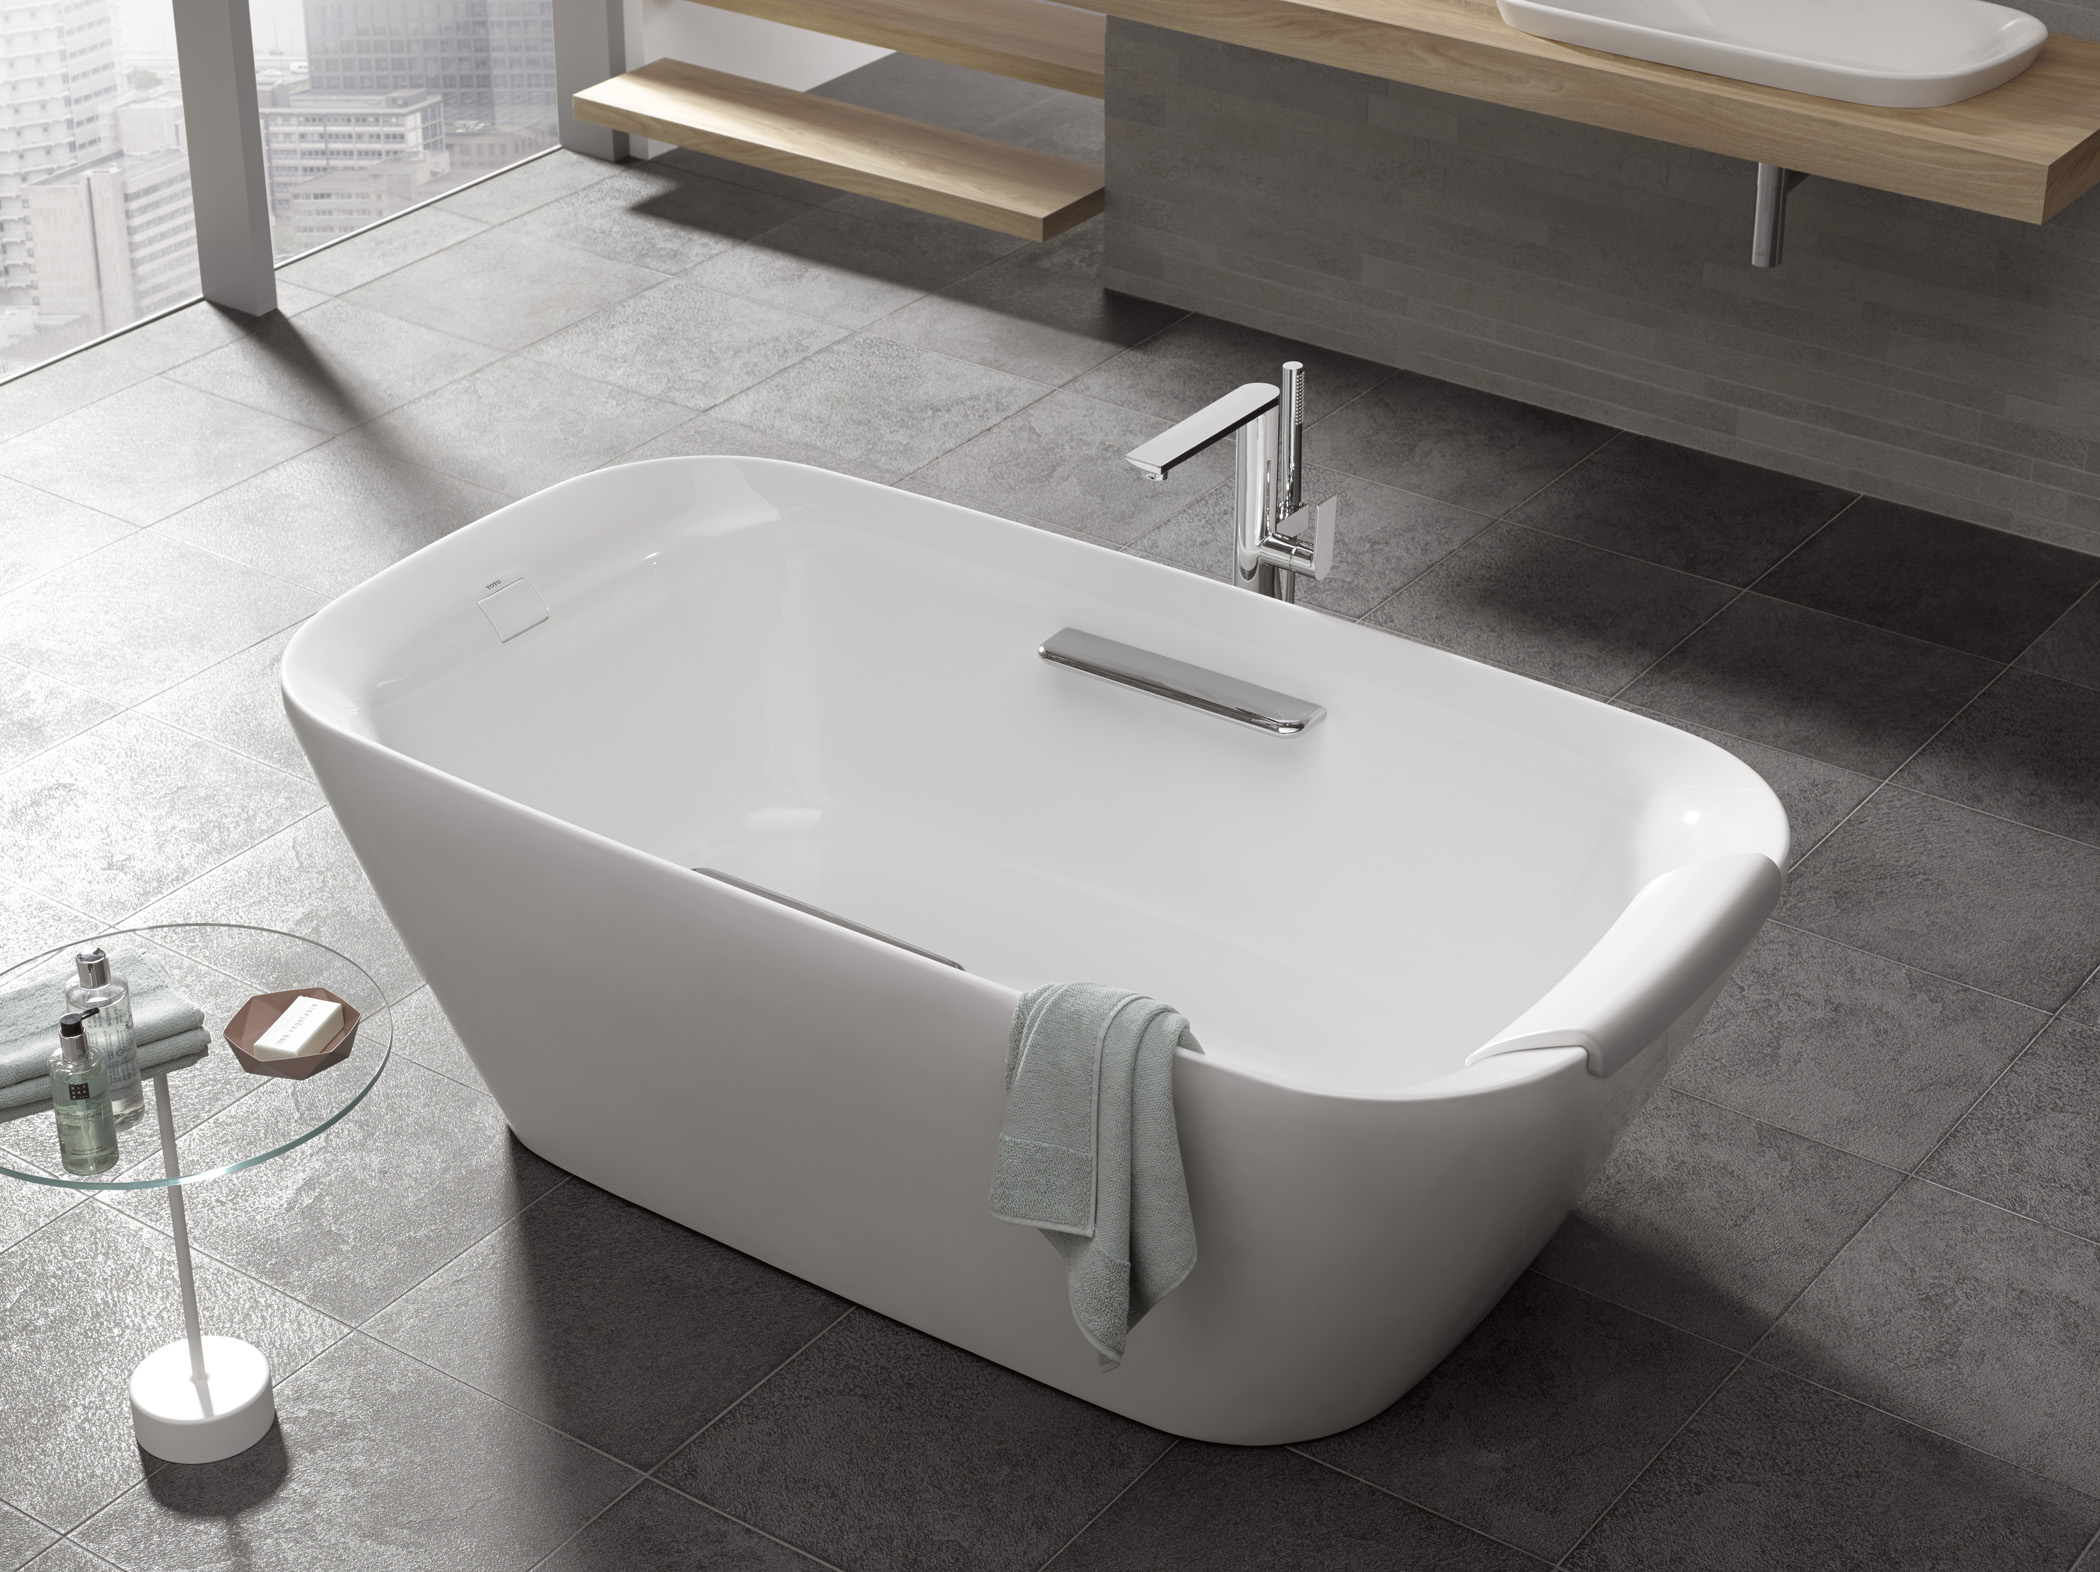 Toto S Neorest Suite Gains Freestanding Tub Custom Home